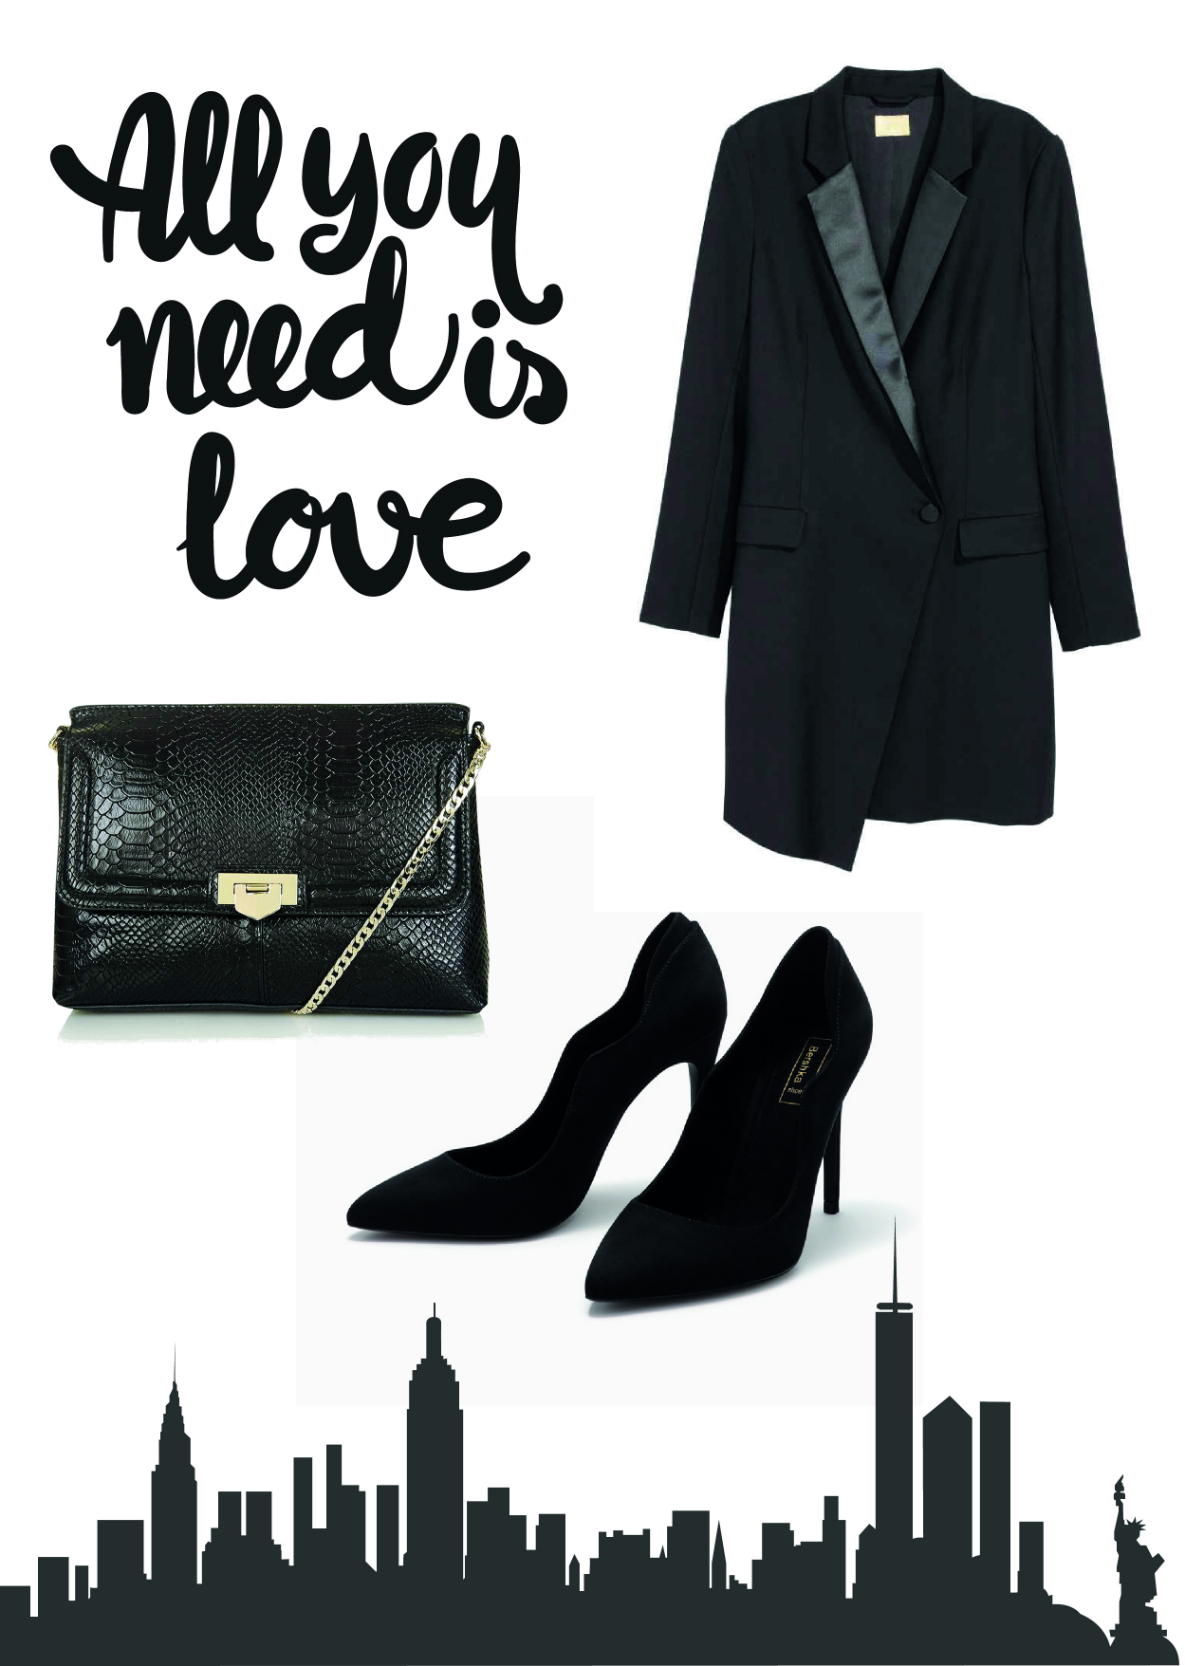 happinesscoco_stvalentin_tenue_4